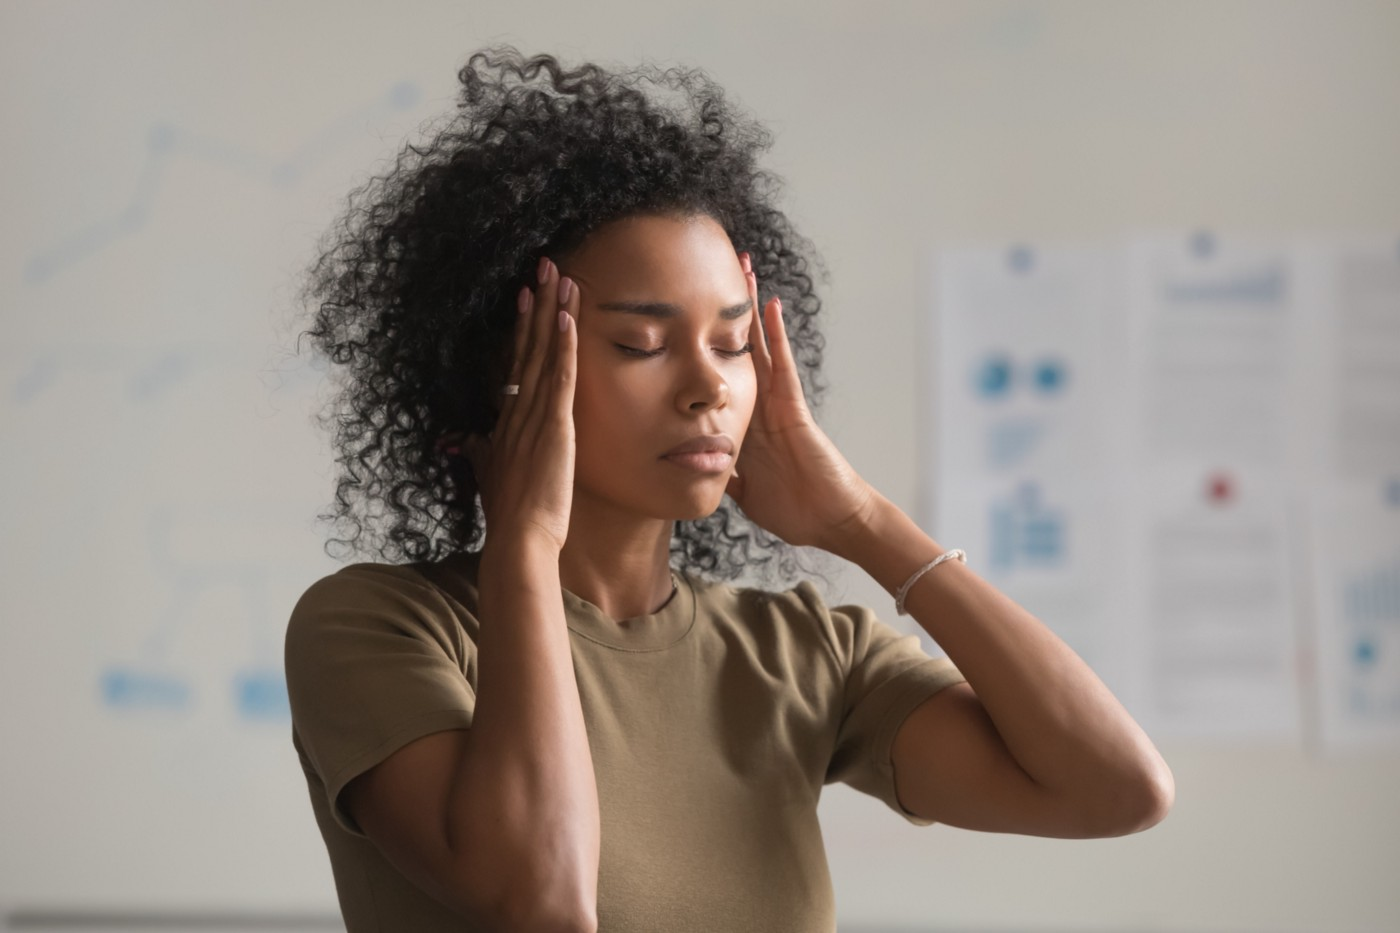 A photo of an exhausted black women with her hands on her temples.